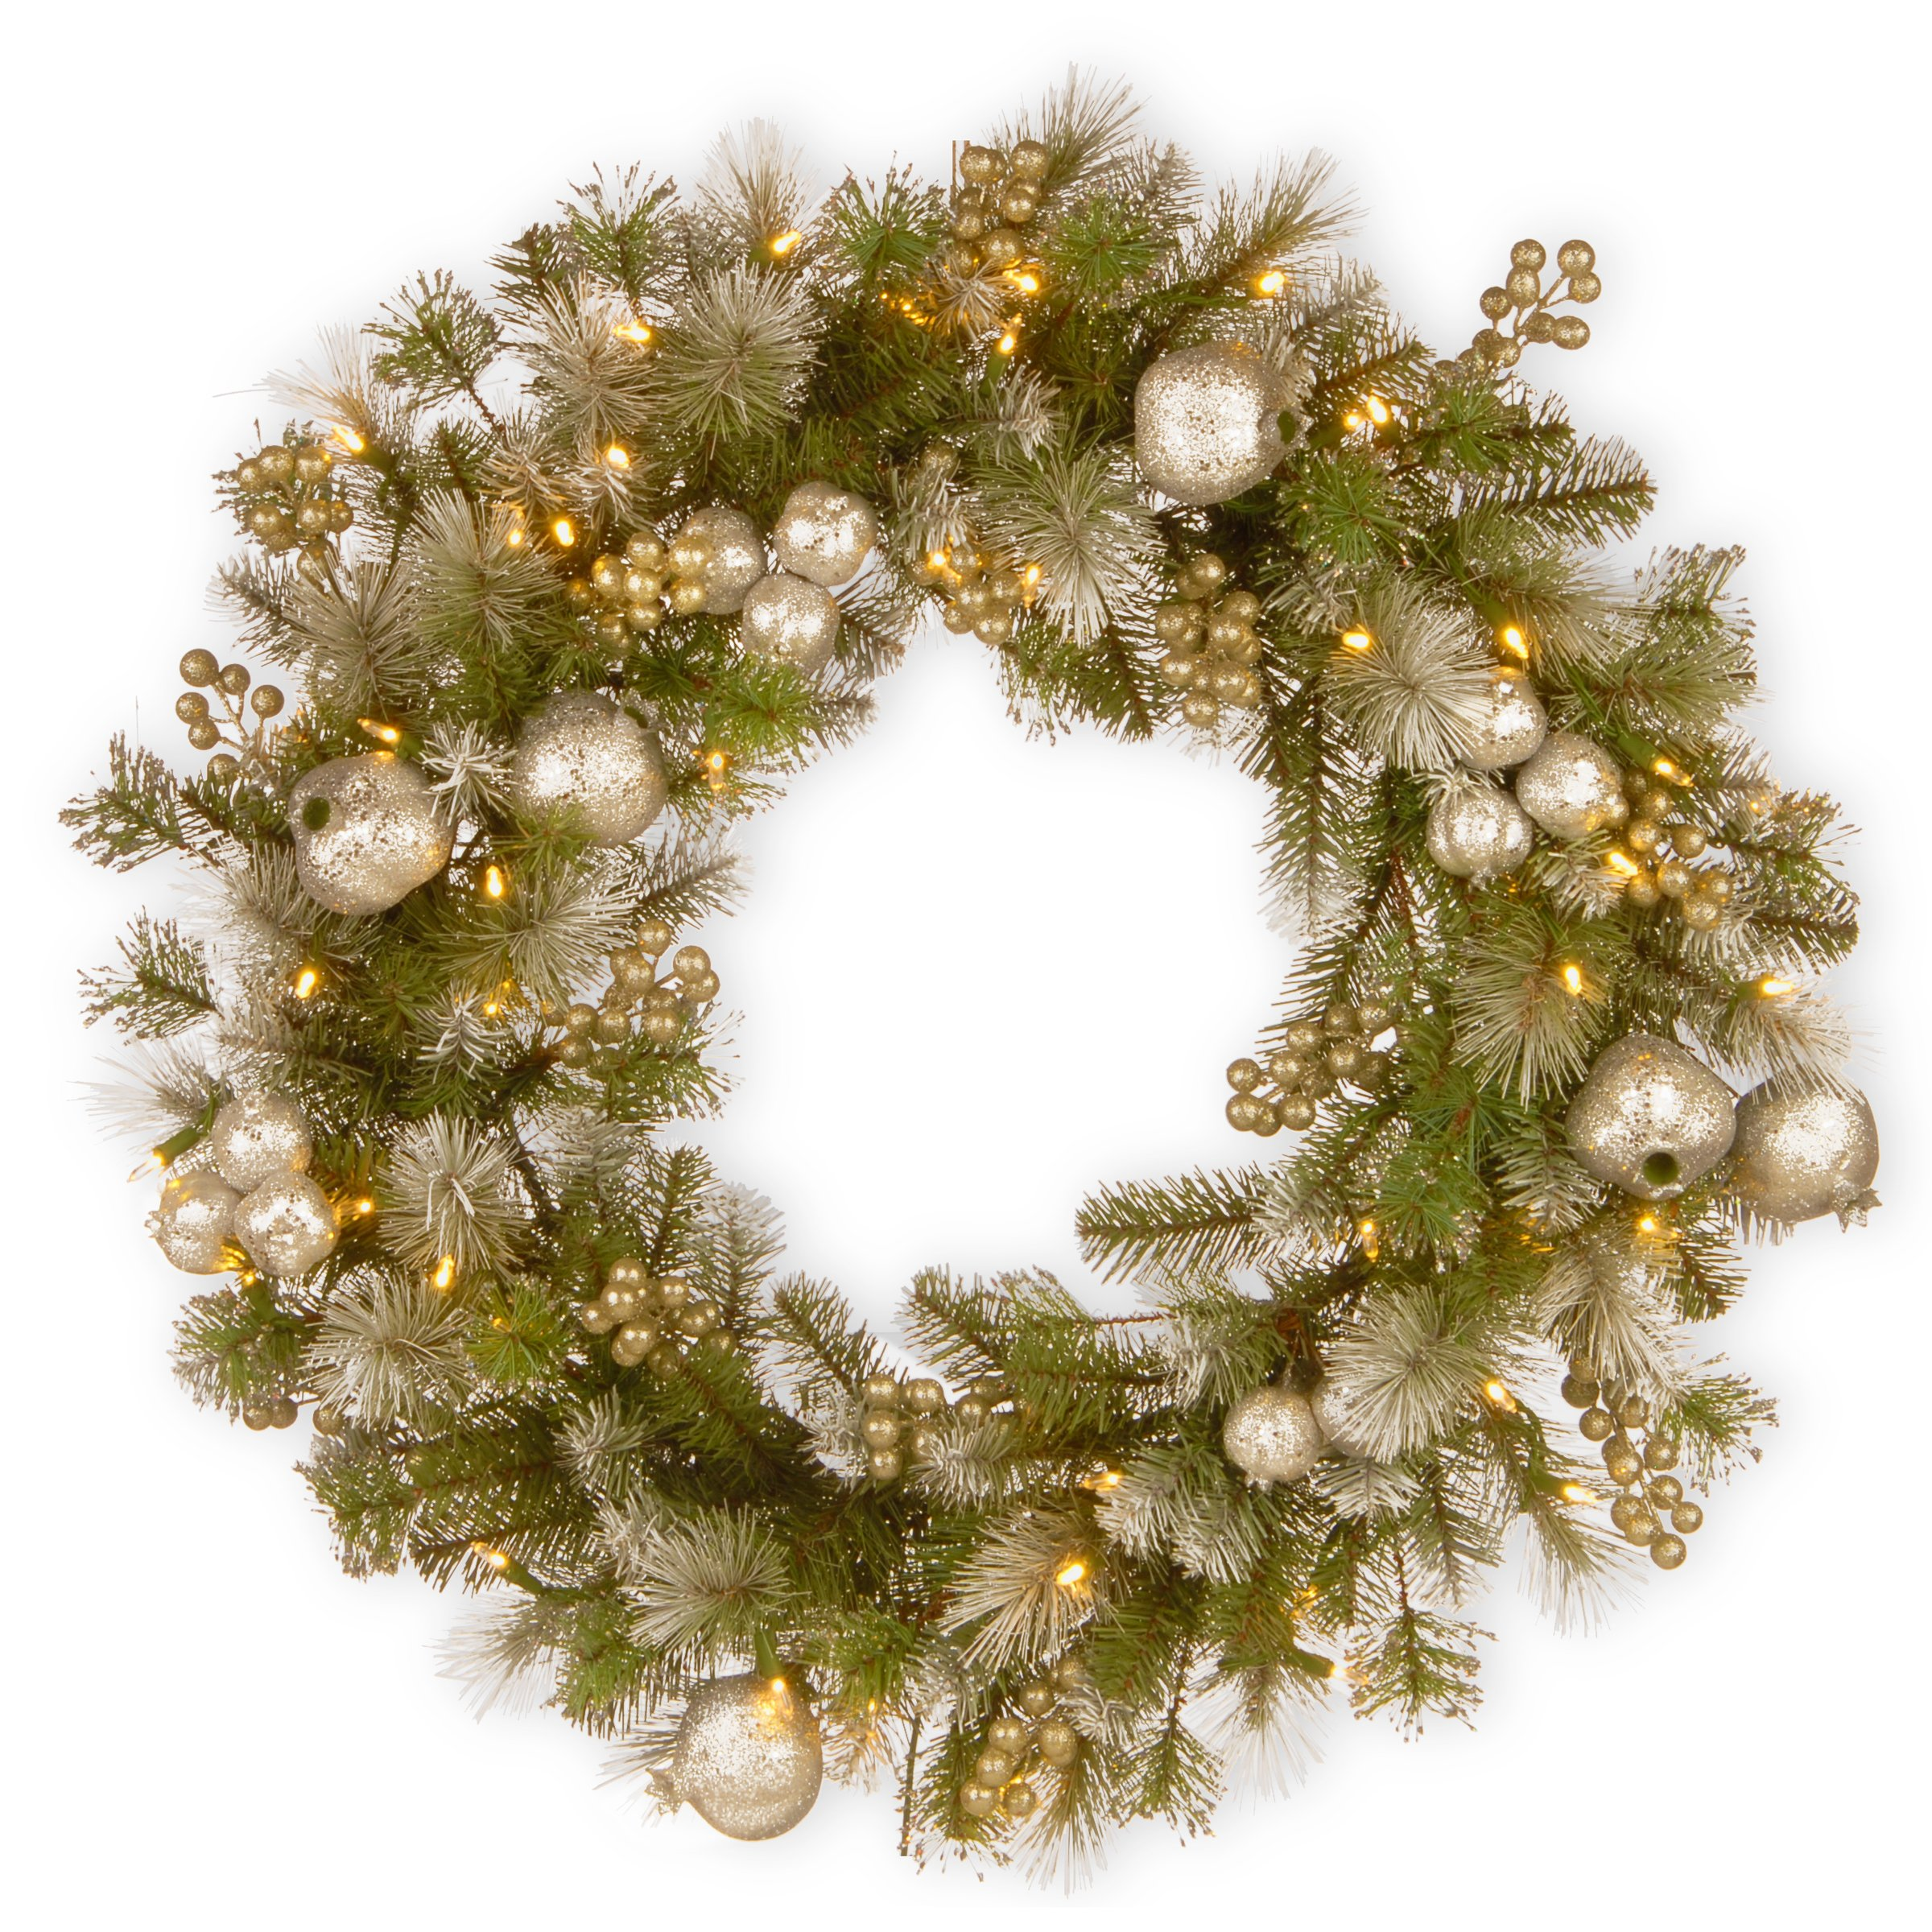 National Tree 30 Inch Glittery Pomegranate Pine Wreath with Silver Pomegranate, Champagne Berries, White Frosted Tips and 70 Battery Operated Warm White LED Lights with Timer (GTP1-300-30W-B1)